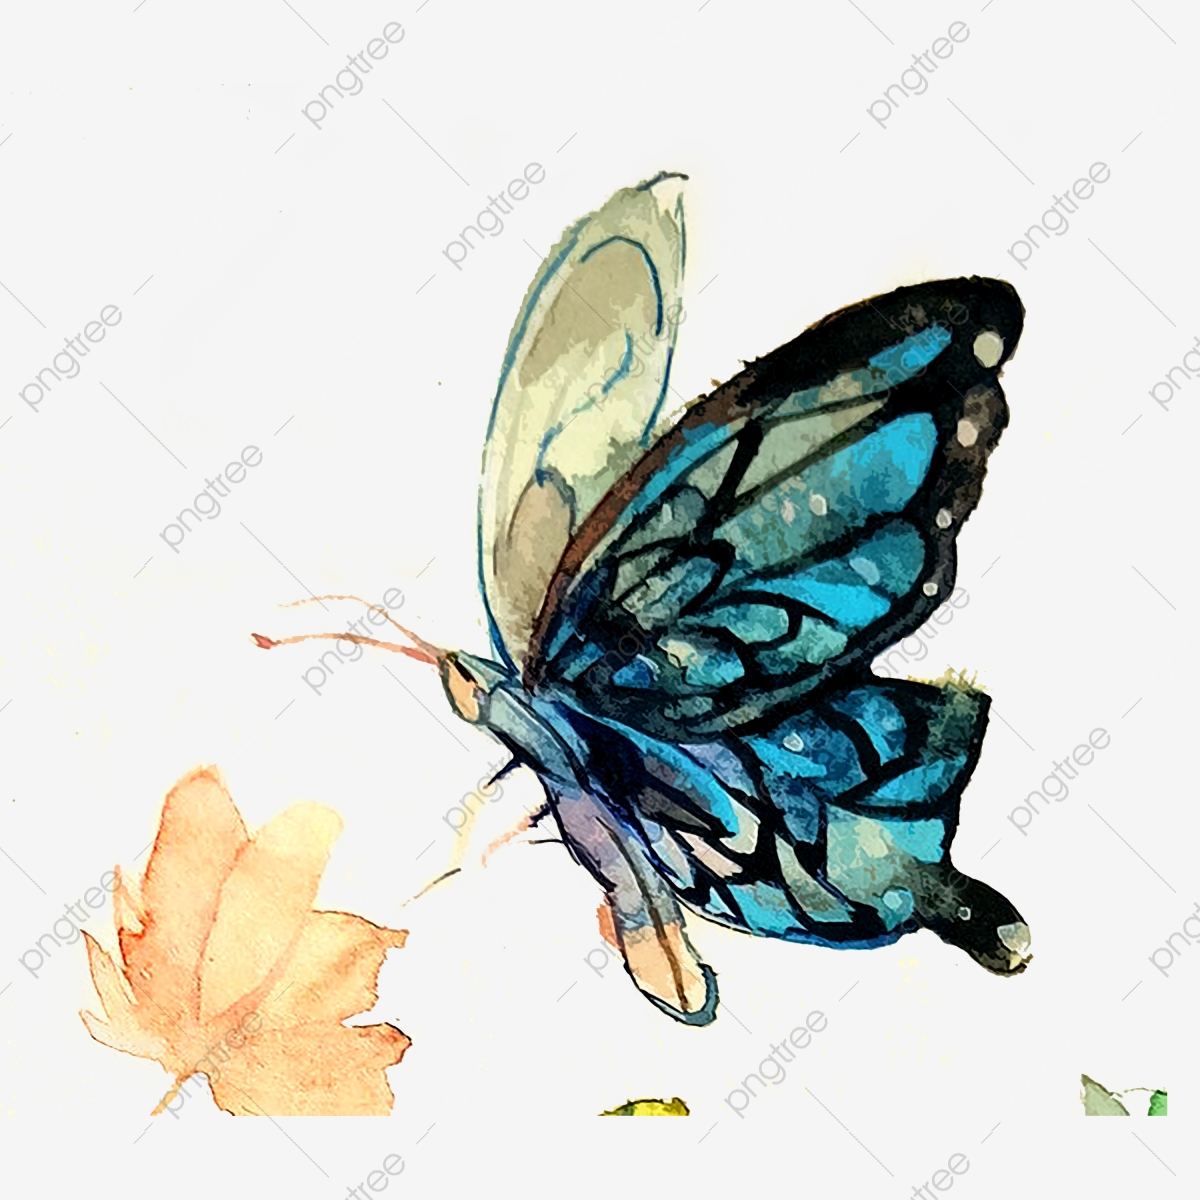 Butterfly Wings Transparent Blue Aesthetic Png Watercolor Ink Butterfly Colorful Png Transparent Clipart Image And Psd File For Free Download